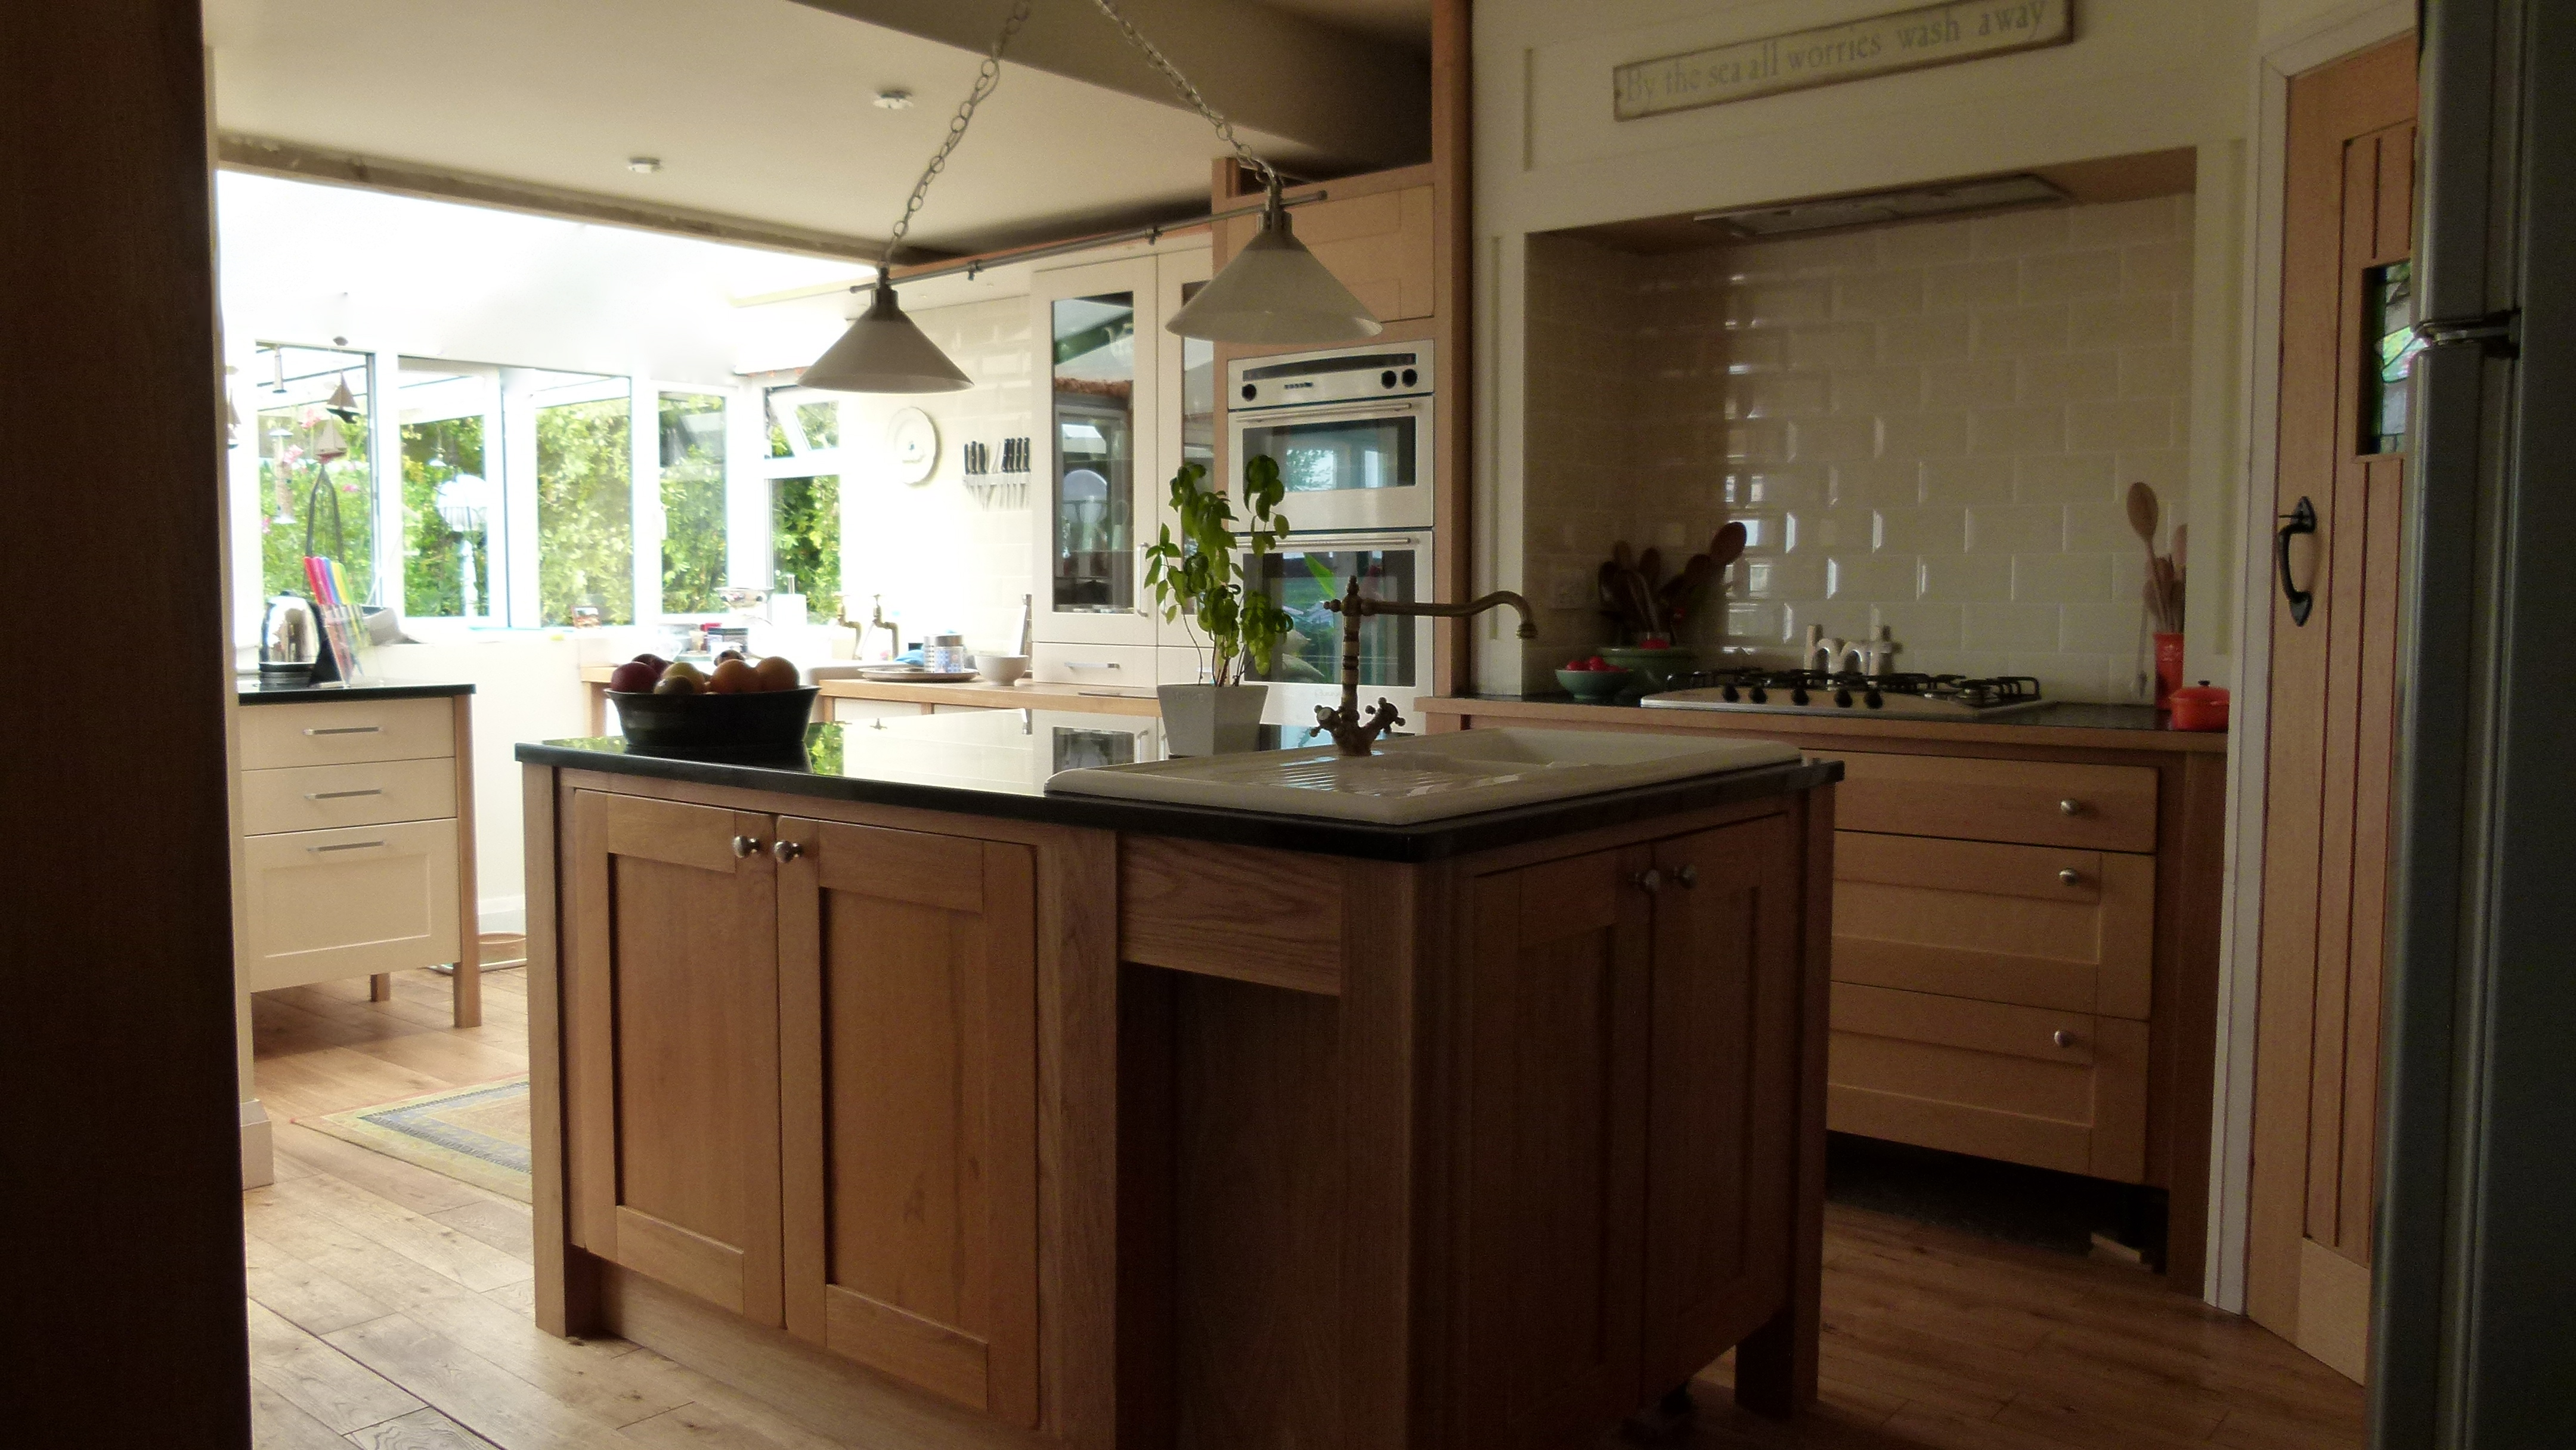 Kitchen with solid white oak counter tops, with a butlers sink fitted creating independent work areas.